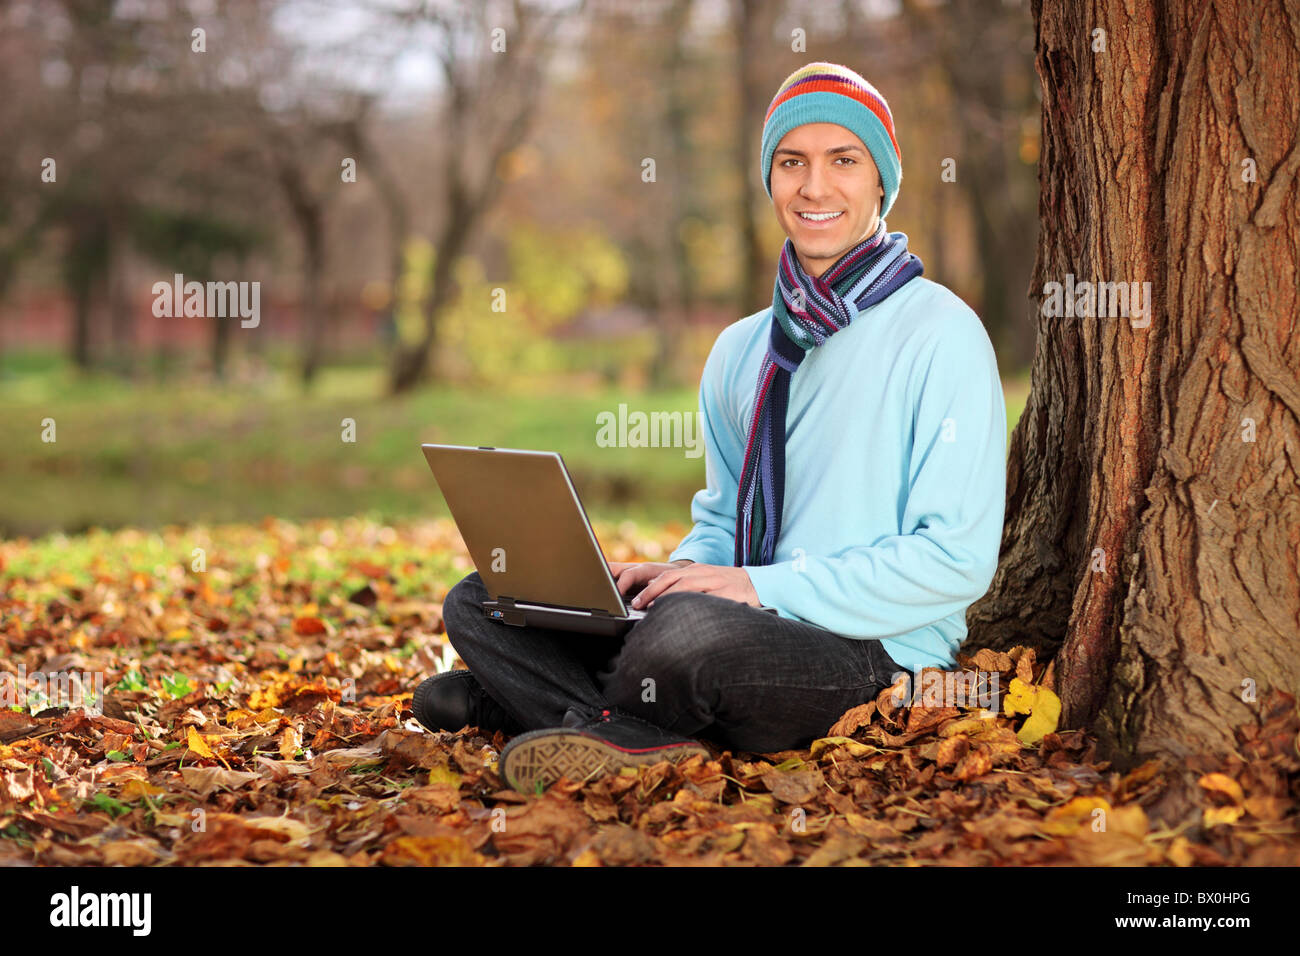 Young man with hat and scarf working on laptop - Stock Image